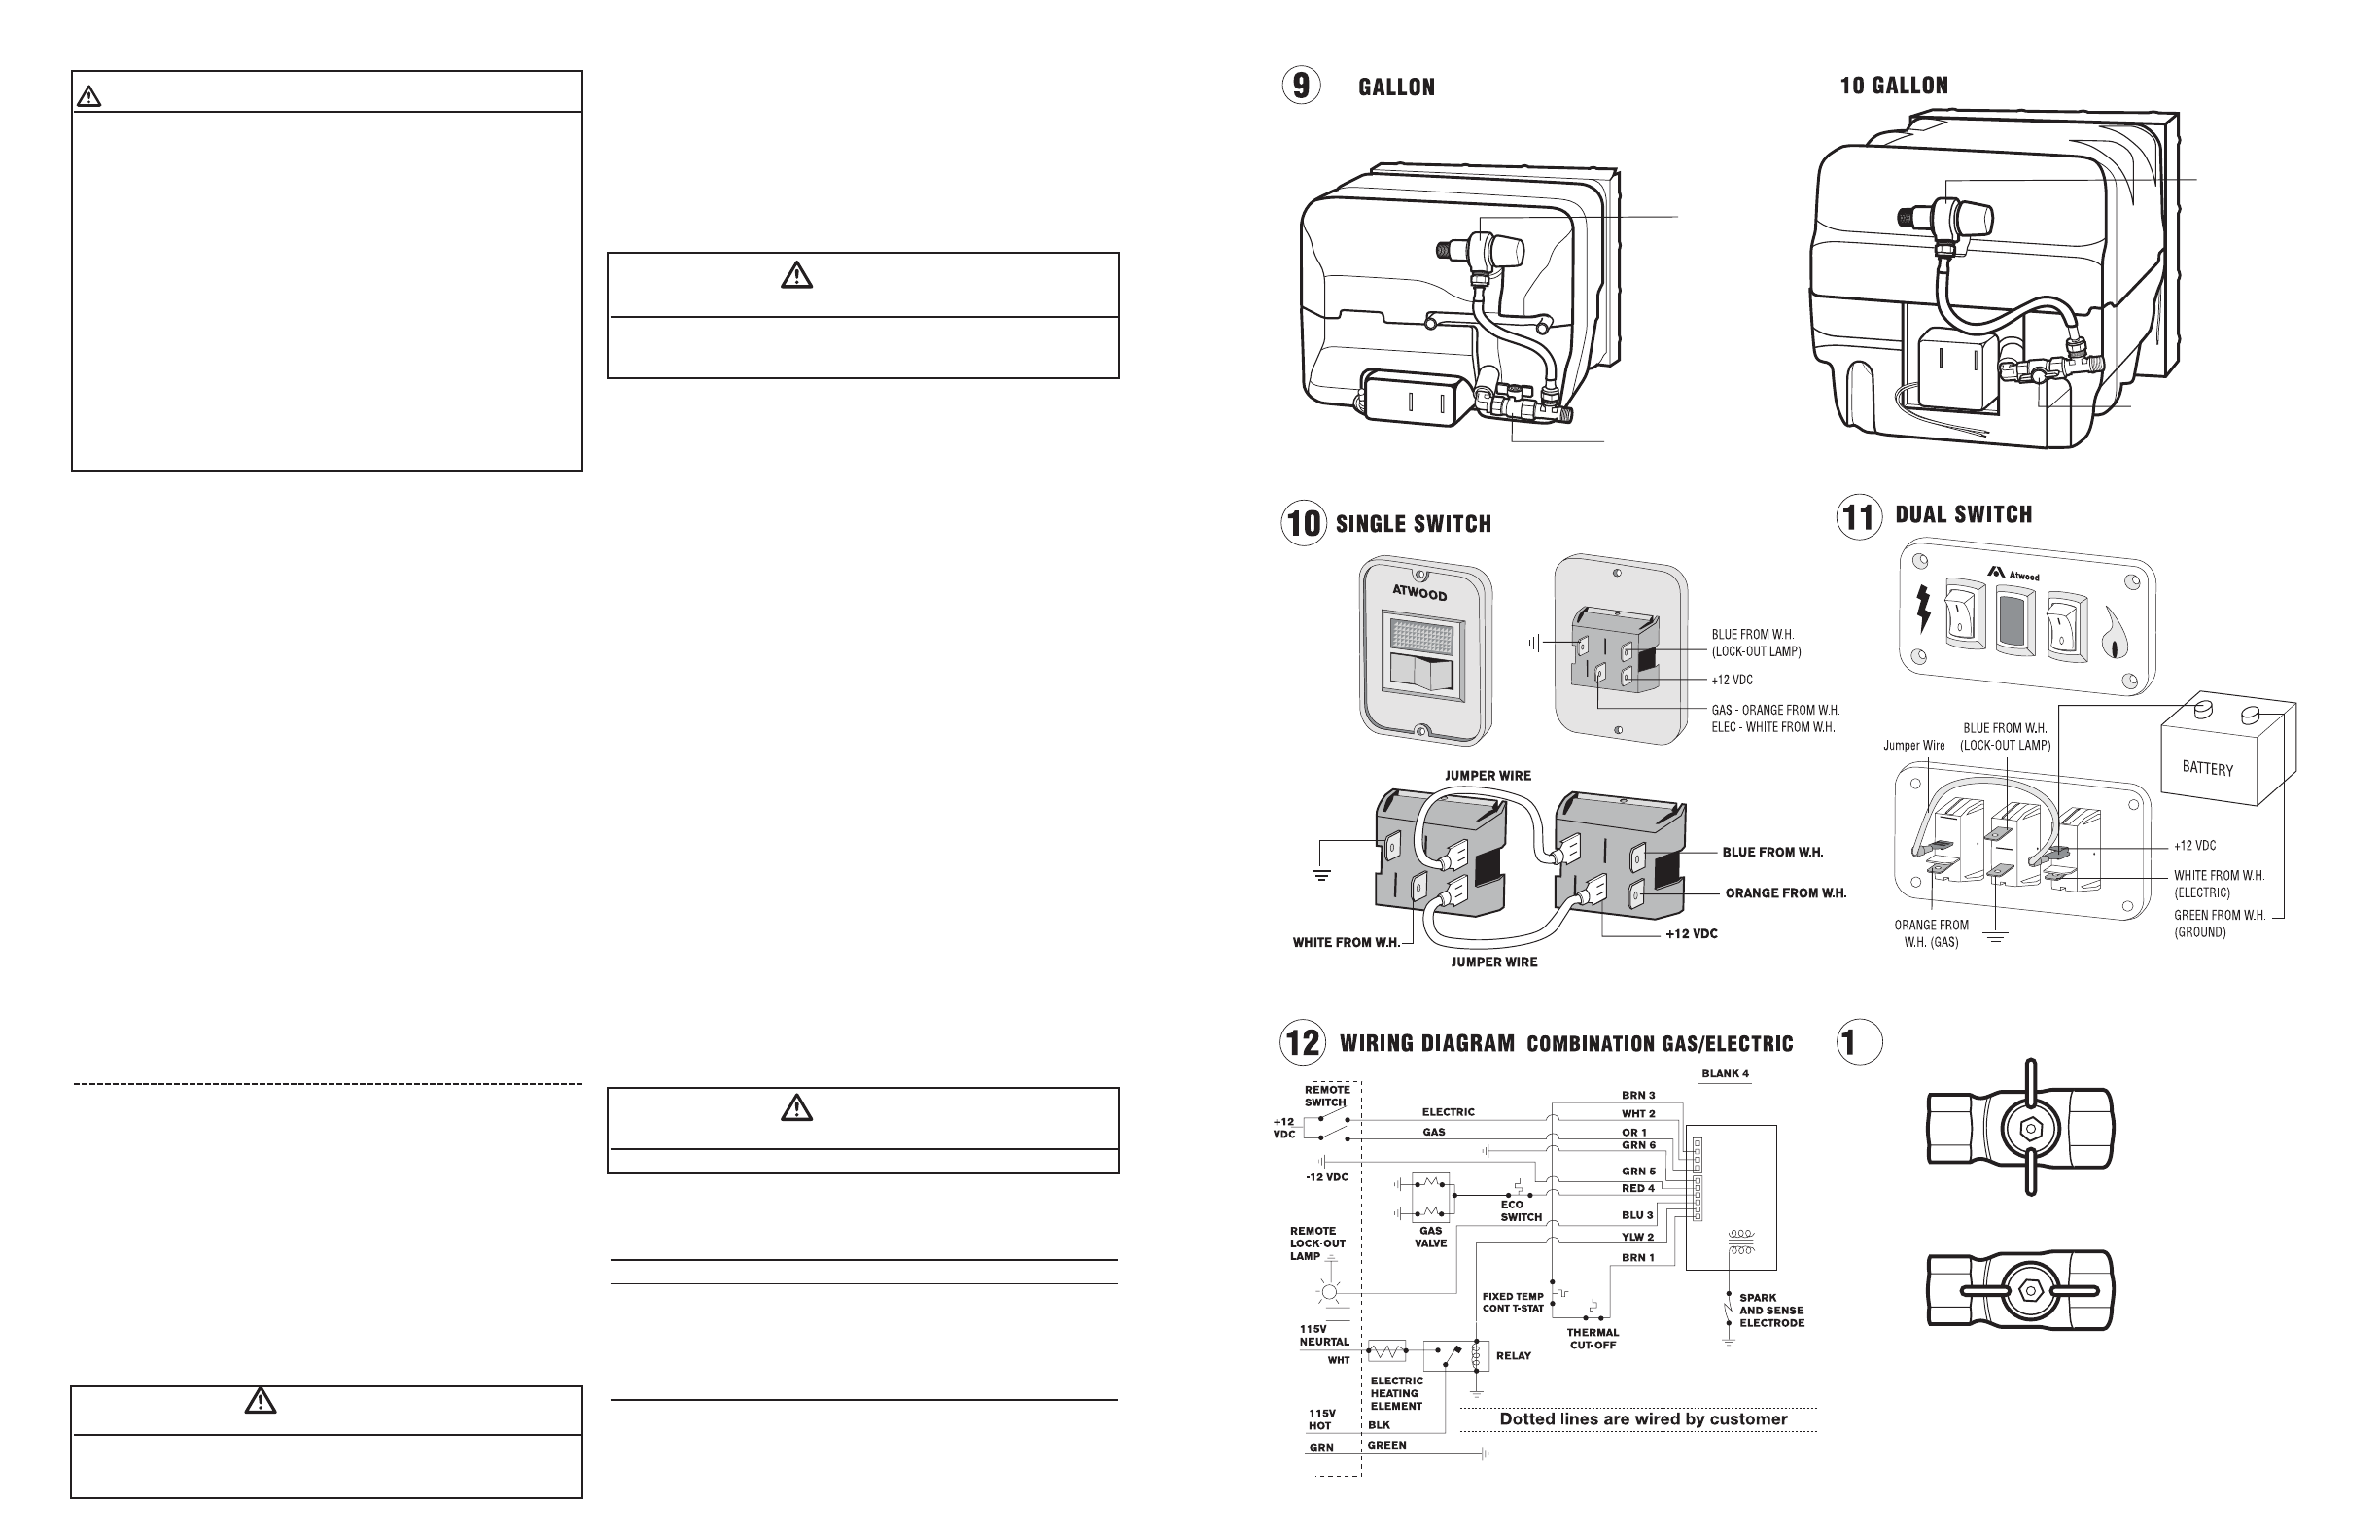 Marmitek X10 Wiring Diagram Page 4 And Schematics Wall Switch Devices Cm15 Pro Domoticz Source 10 7